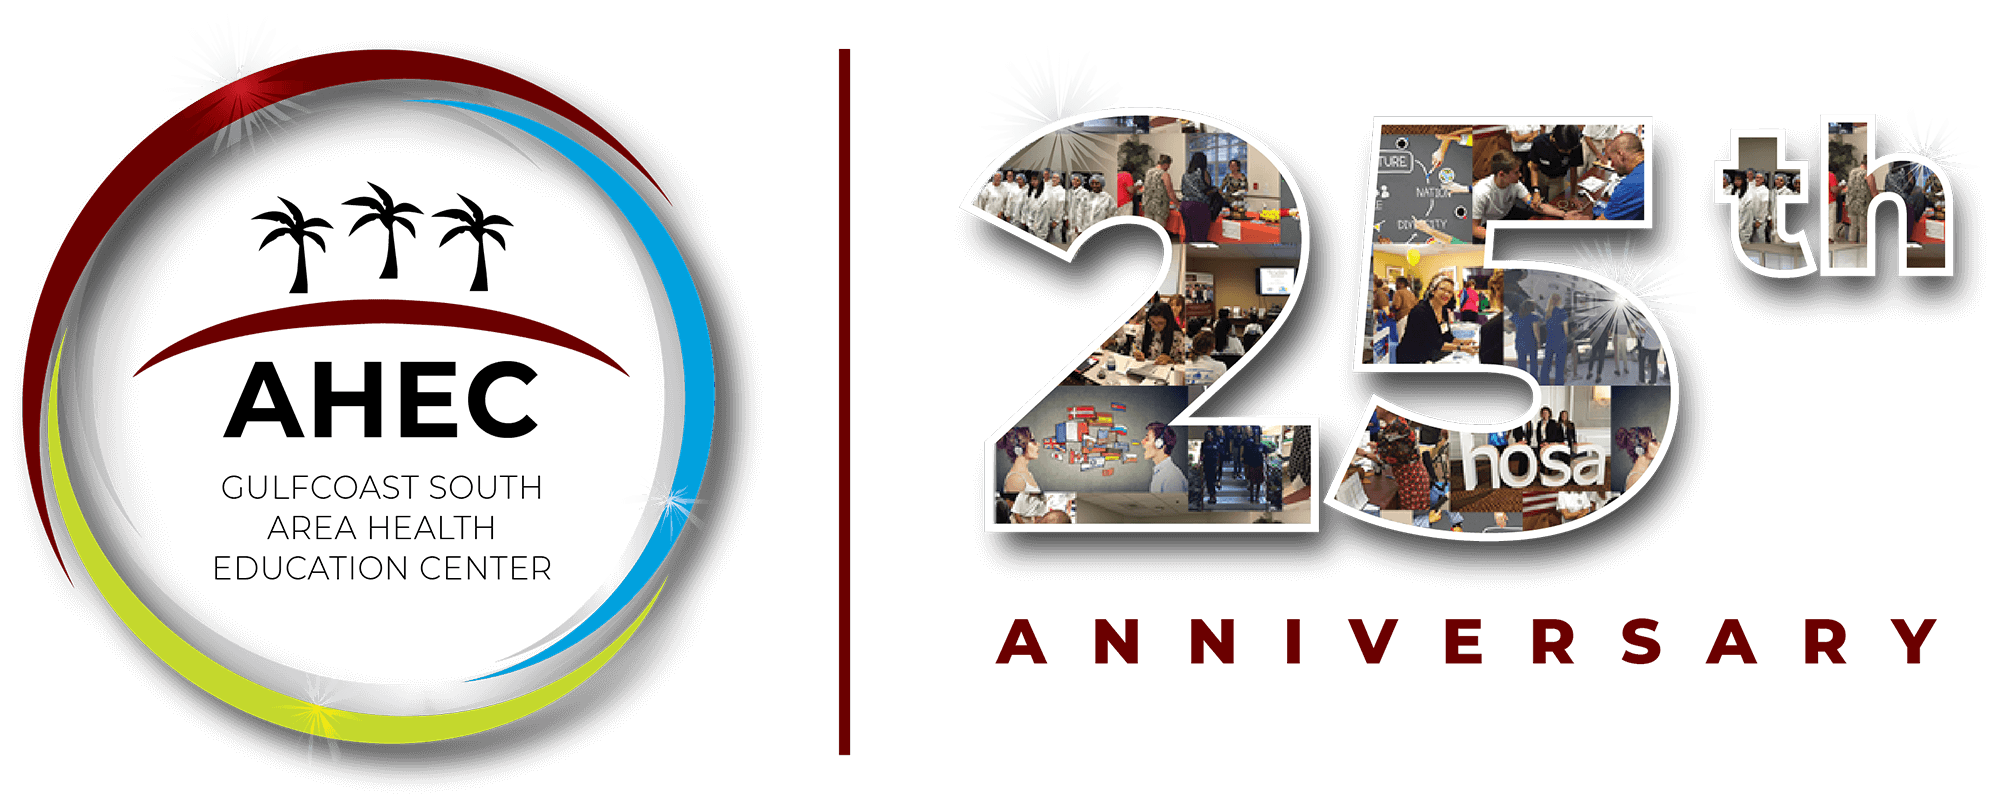 25th Anniversary Collage Logo